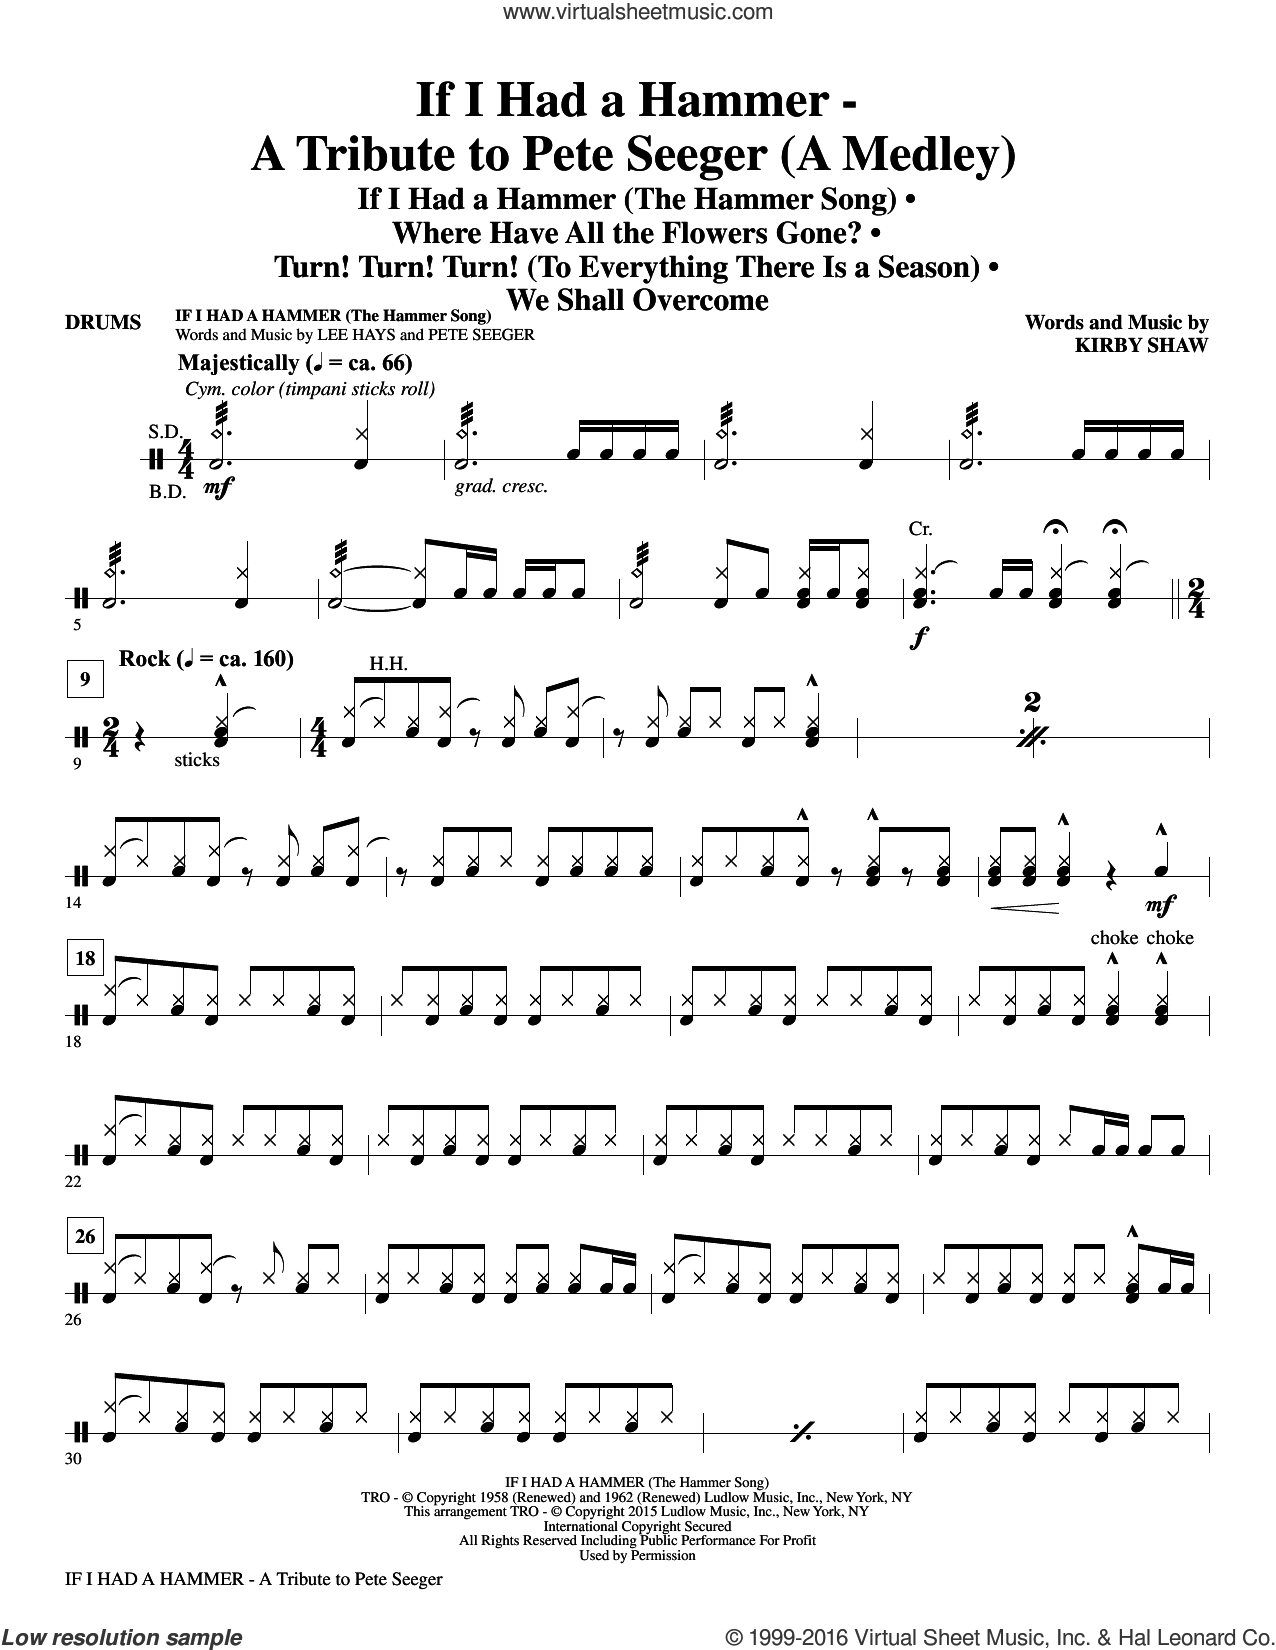 If I Had A Hammer, a tribute to pete seeger sheet music for orchestra/band (drums) by Pete Seeger, Kirby Shaw and Peter, Paul & Mary, intermediate. Score Image Preview.